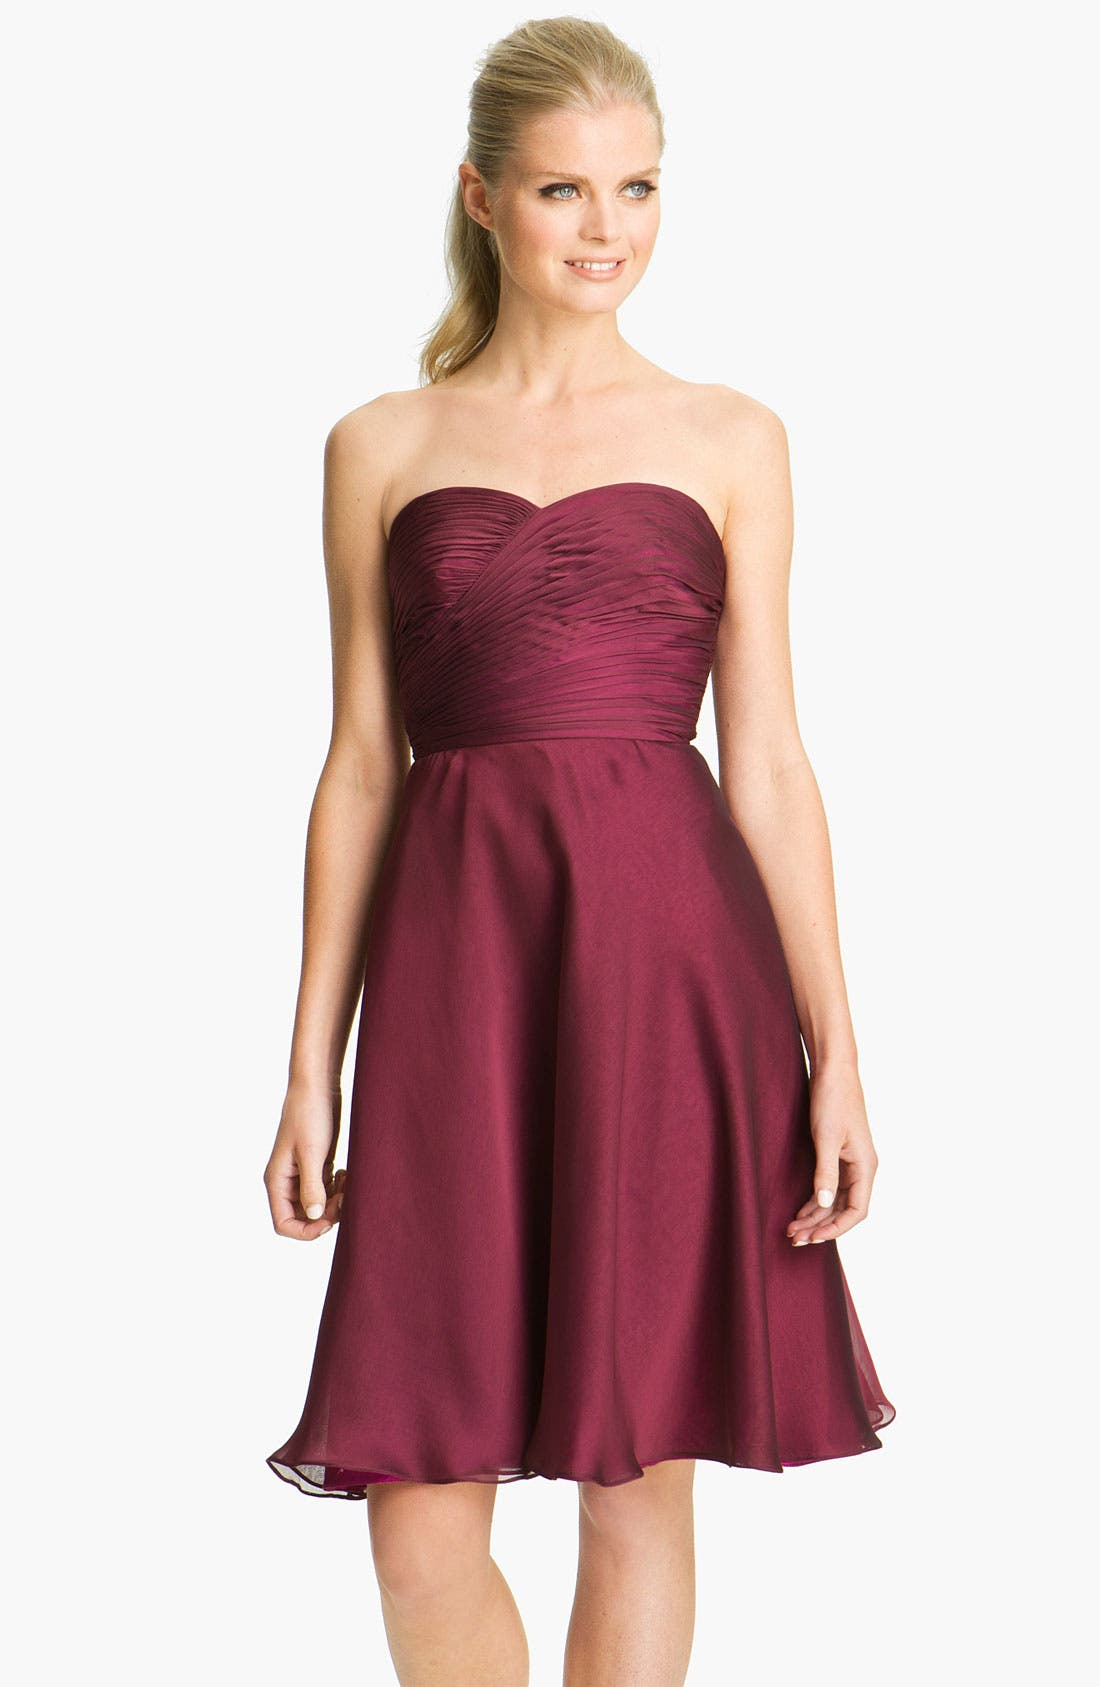 Alternate Image 1 Selected - ML Monique Lhuillier Bridesmaids Pleated Chiffon Sweetheart Dress (Nordstrom Exclusive)